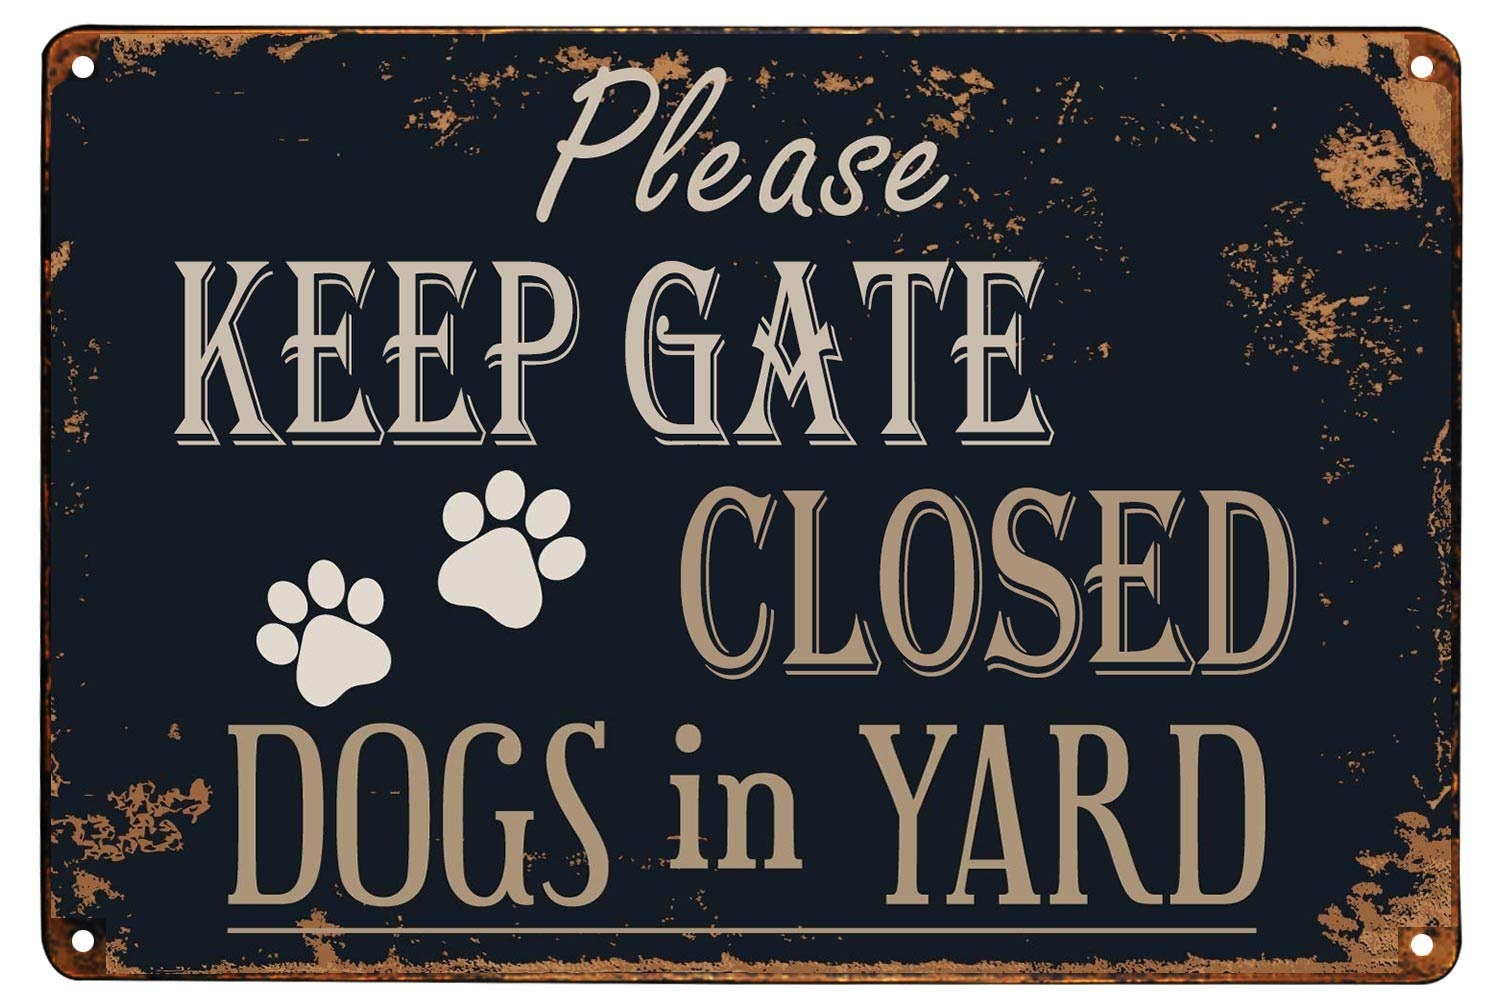 Monifith Please Keep Gate Closed Dogs in Yard Reto Vintage Metal Tin Signs for Lawn Garden Yard Signs 8X12Inch